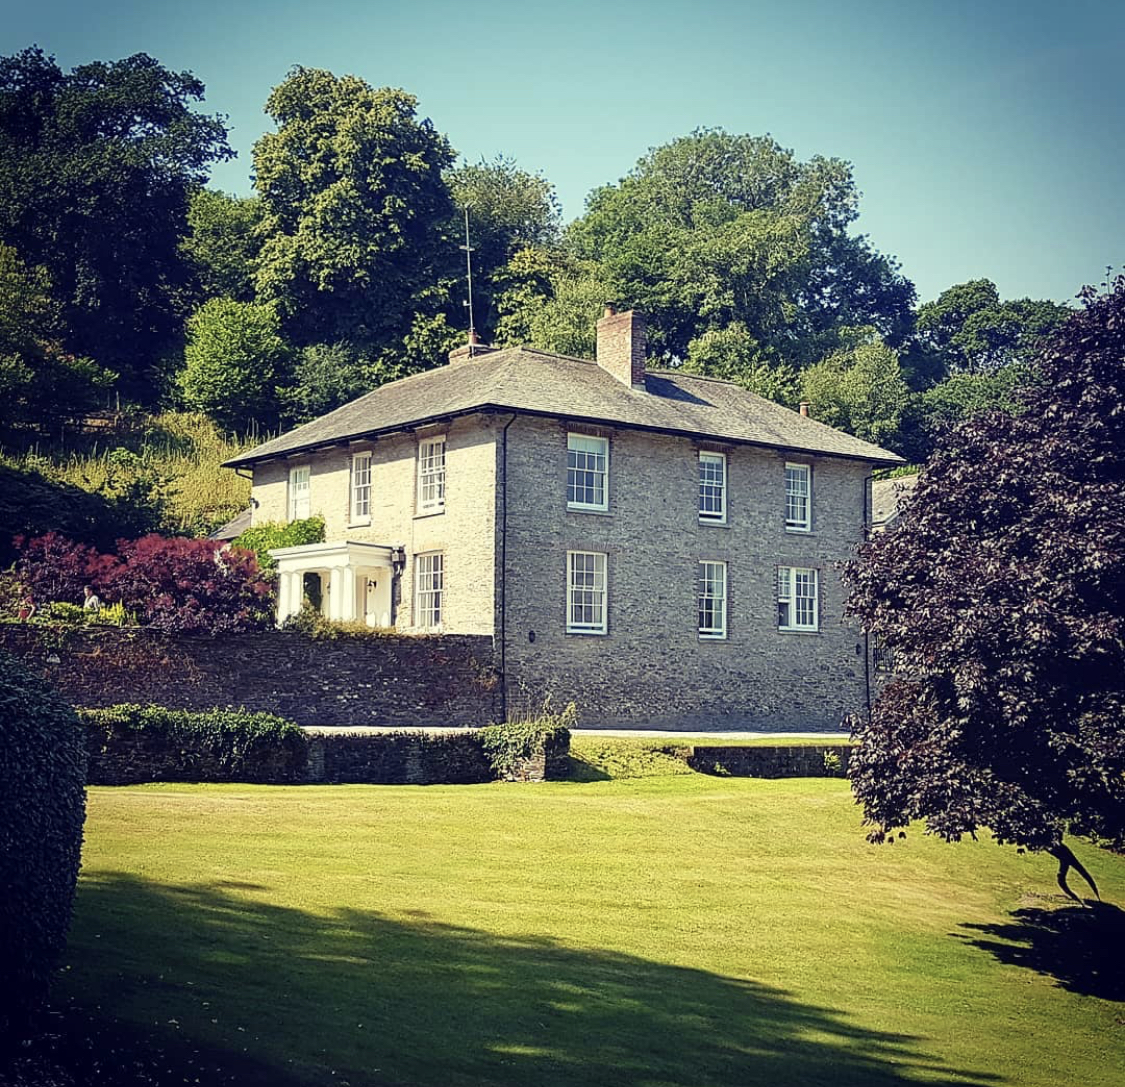 Gitcombe Holiday Cottages, Devon | Cotswold Baby co